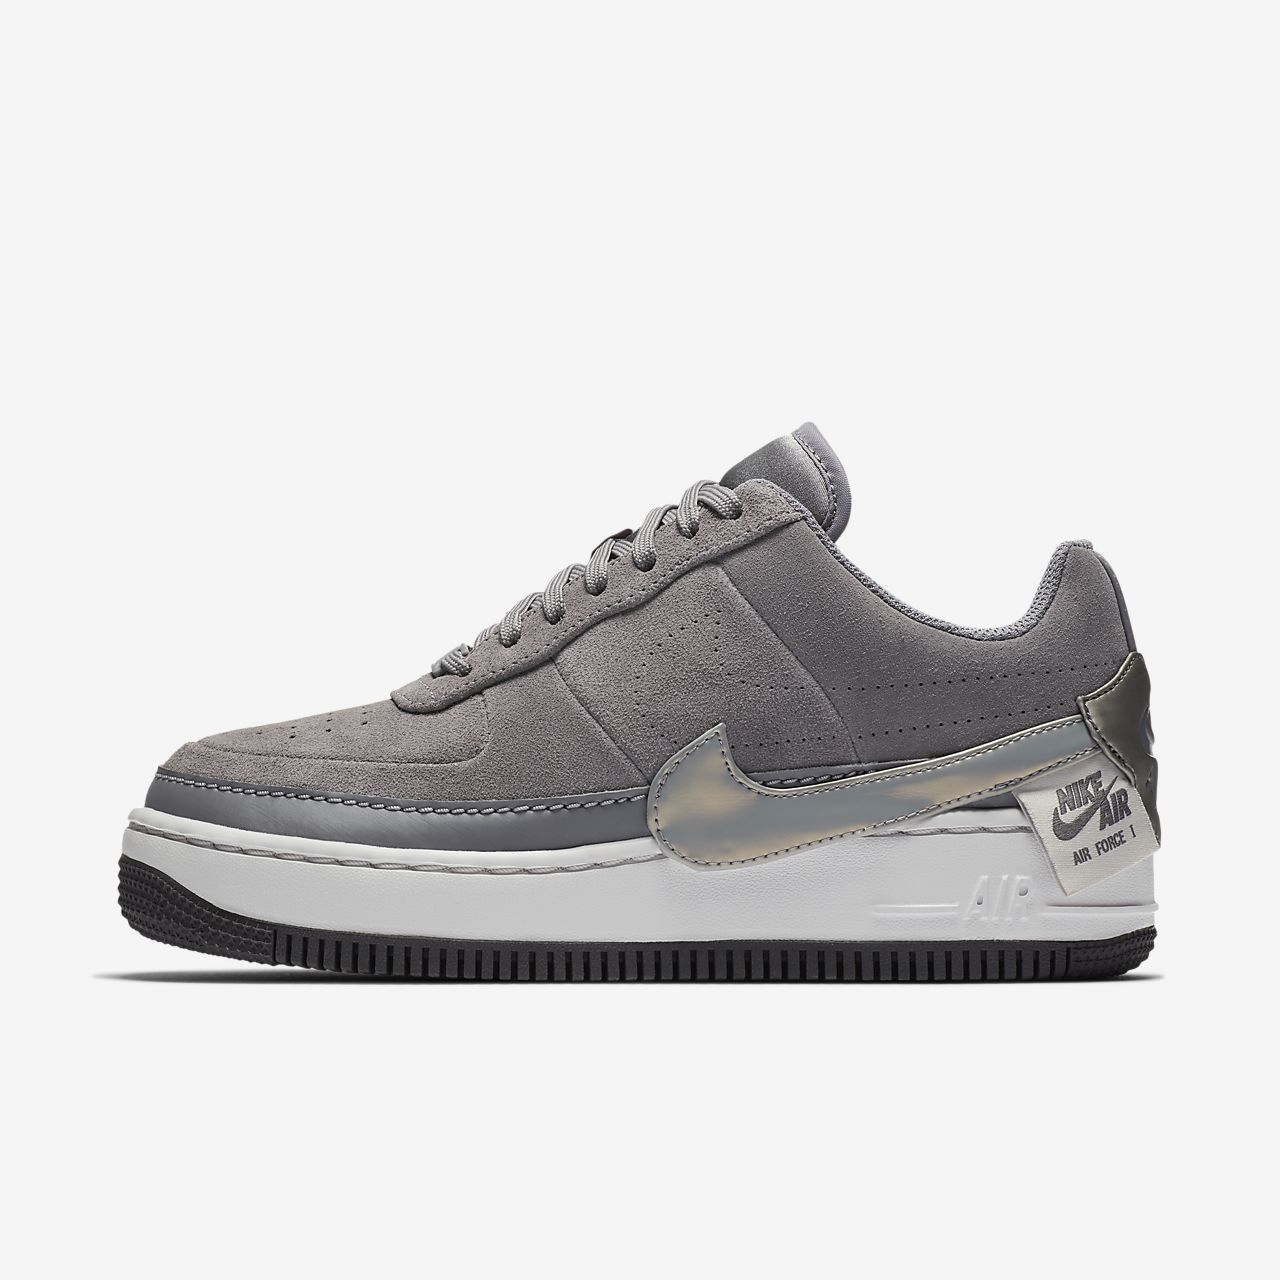 sports shoes cac69 63f25 Nike Air Force 1 Jester-sko til kvinder